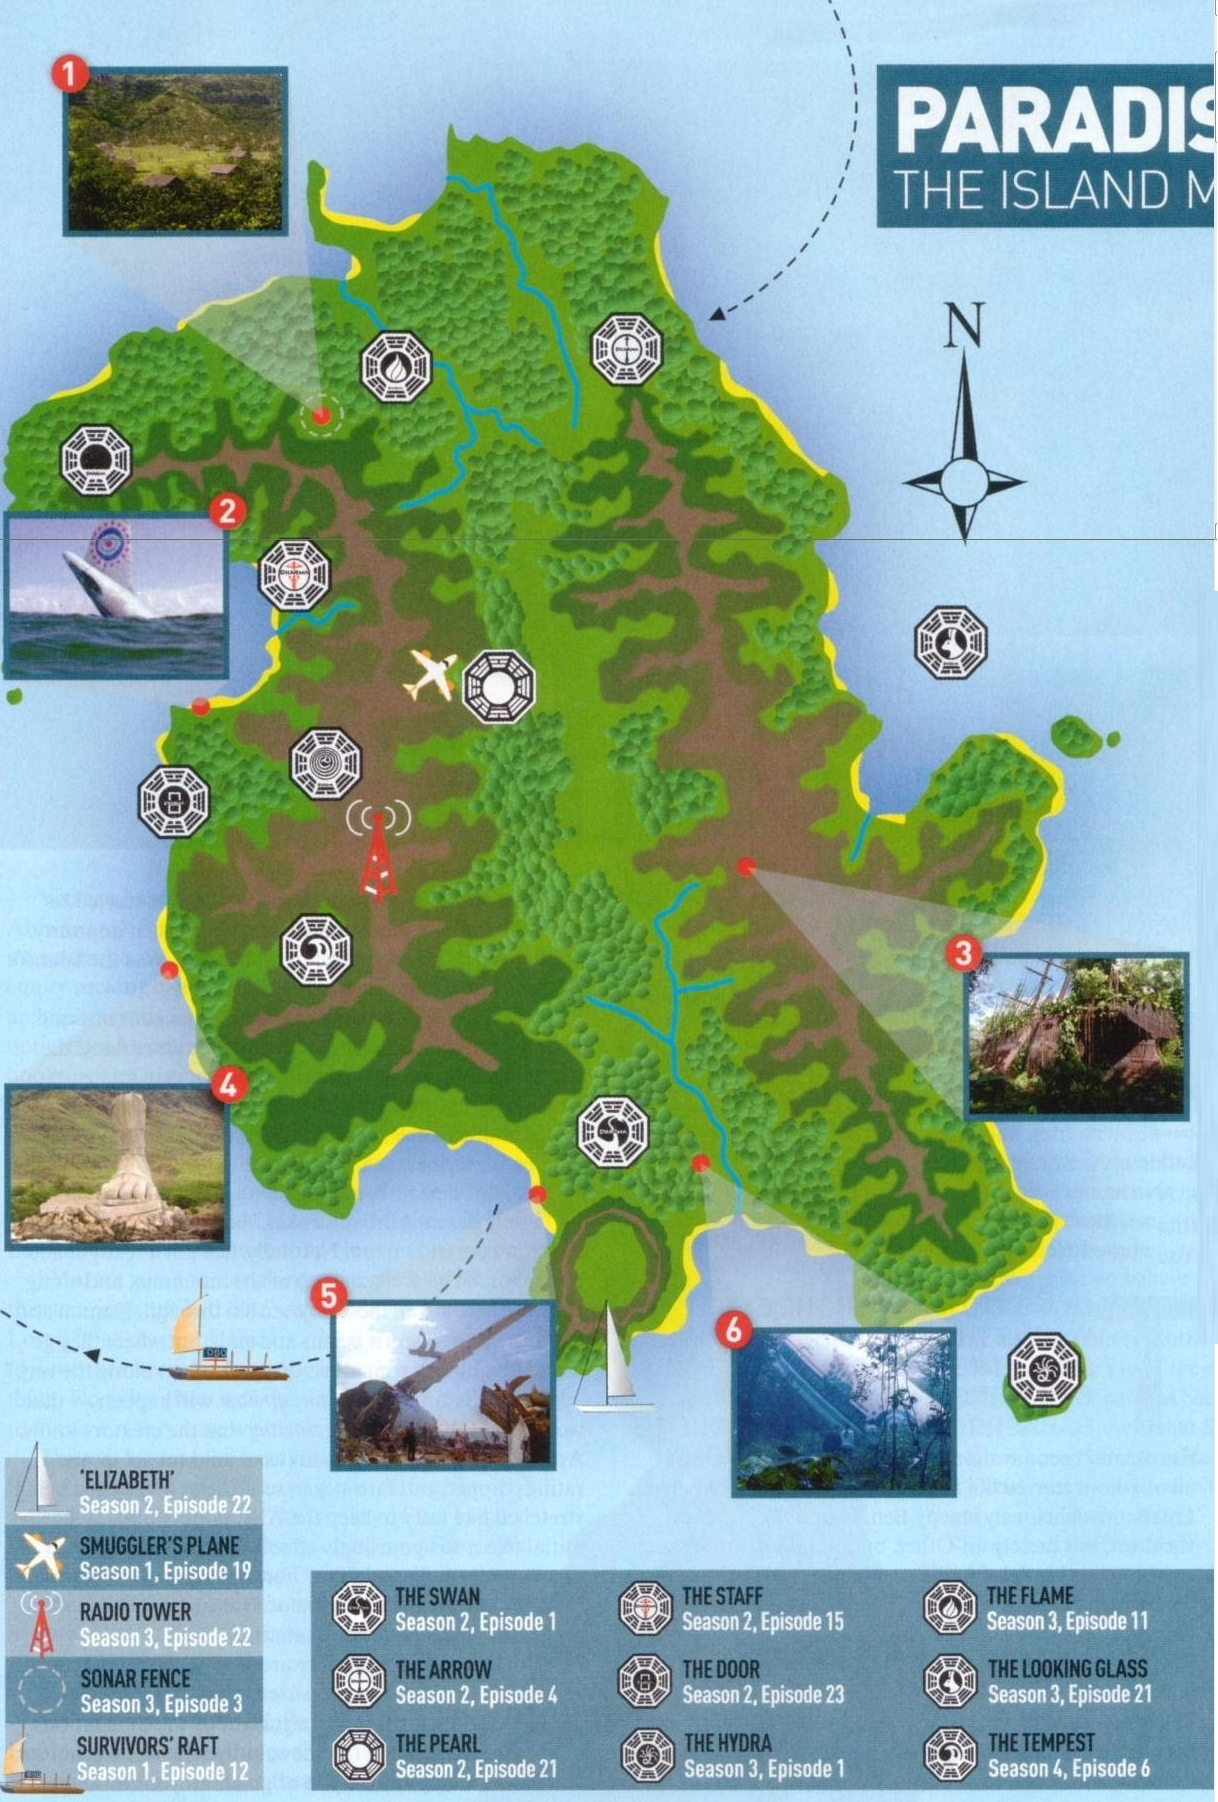 Lost Island Map by empire magazine